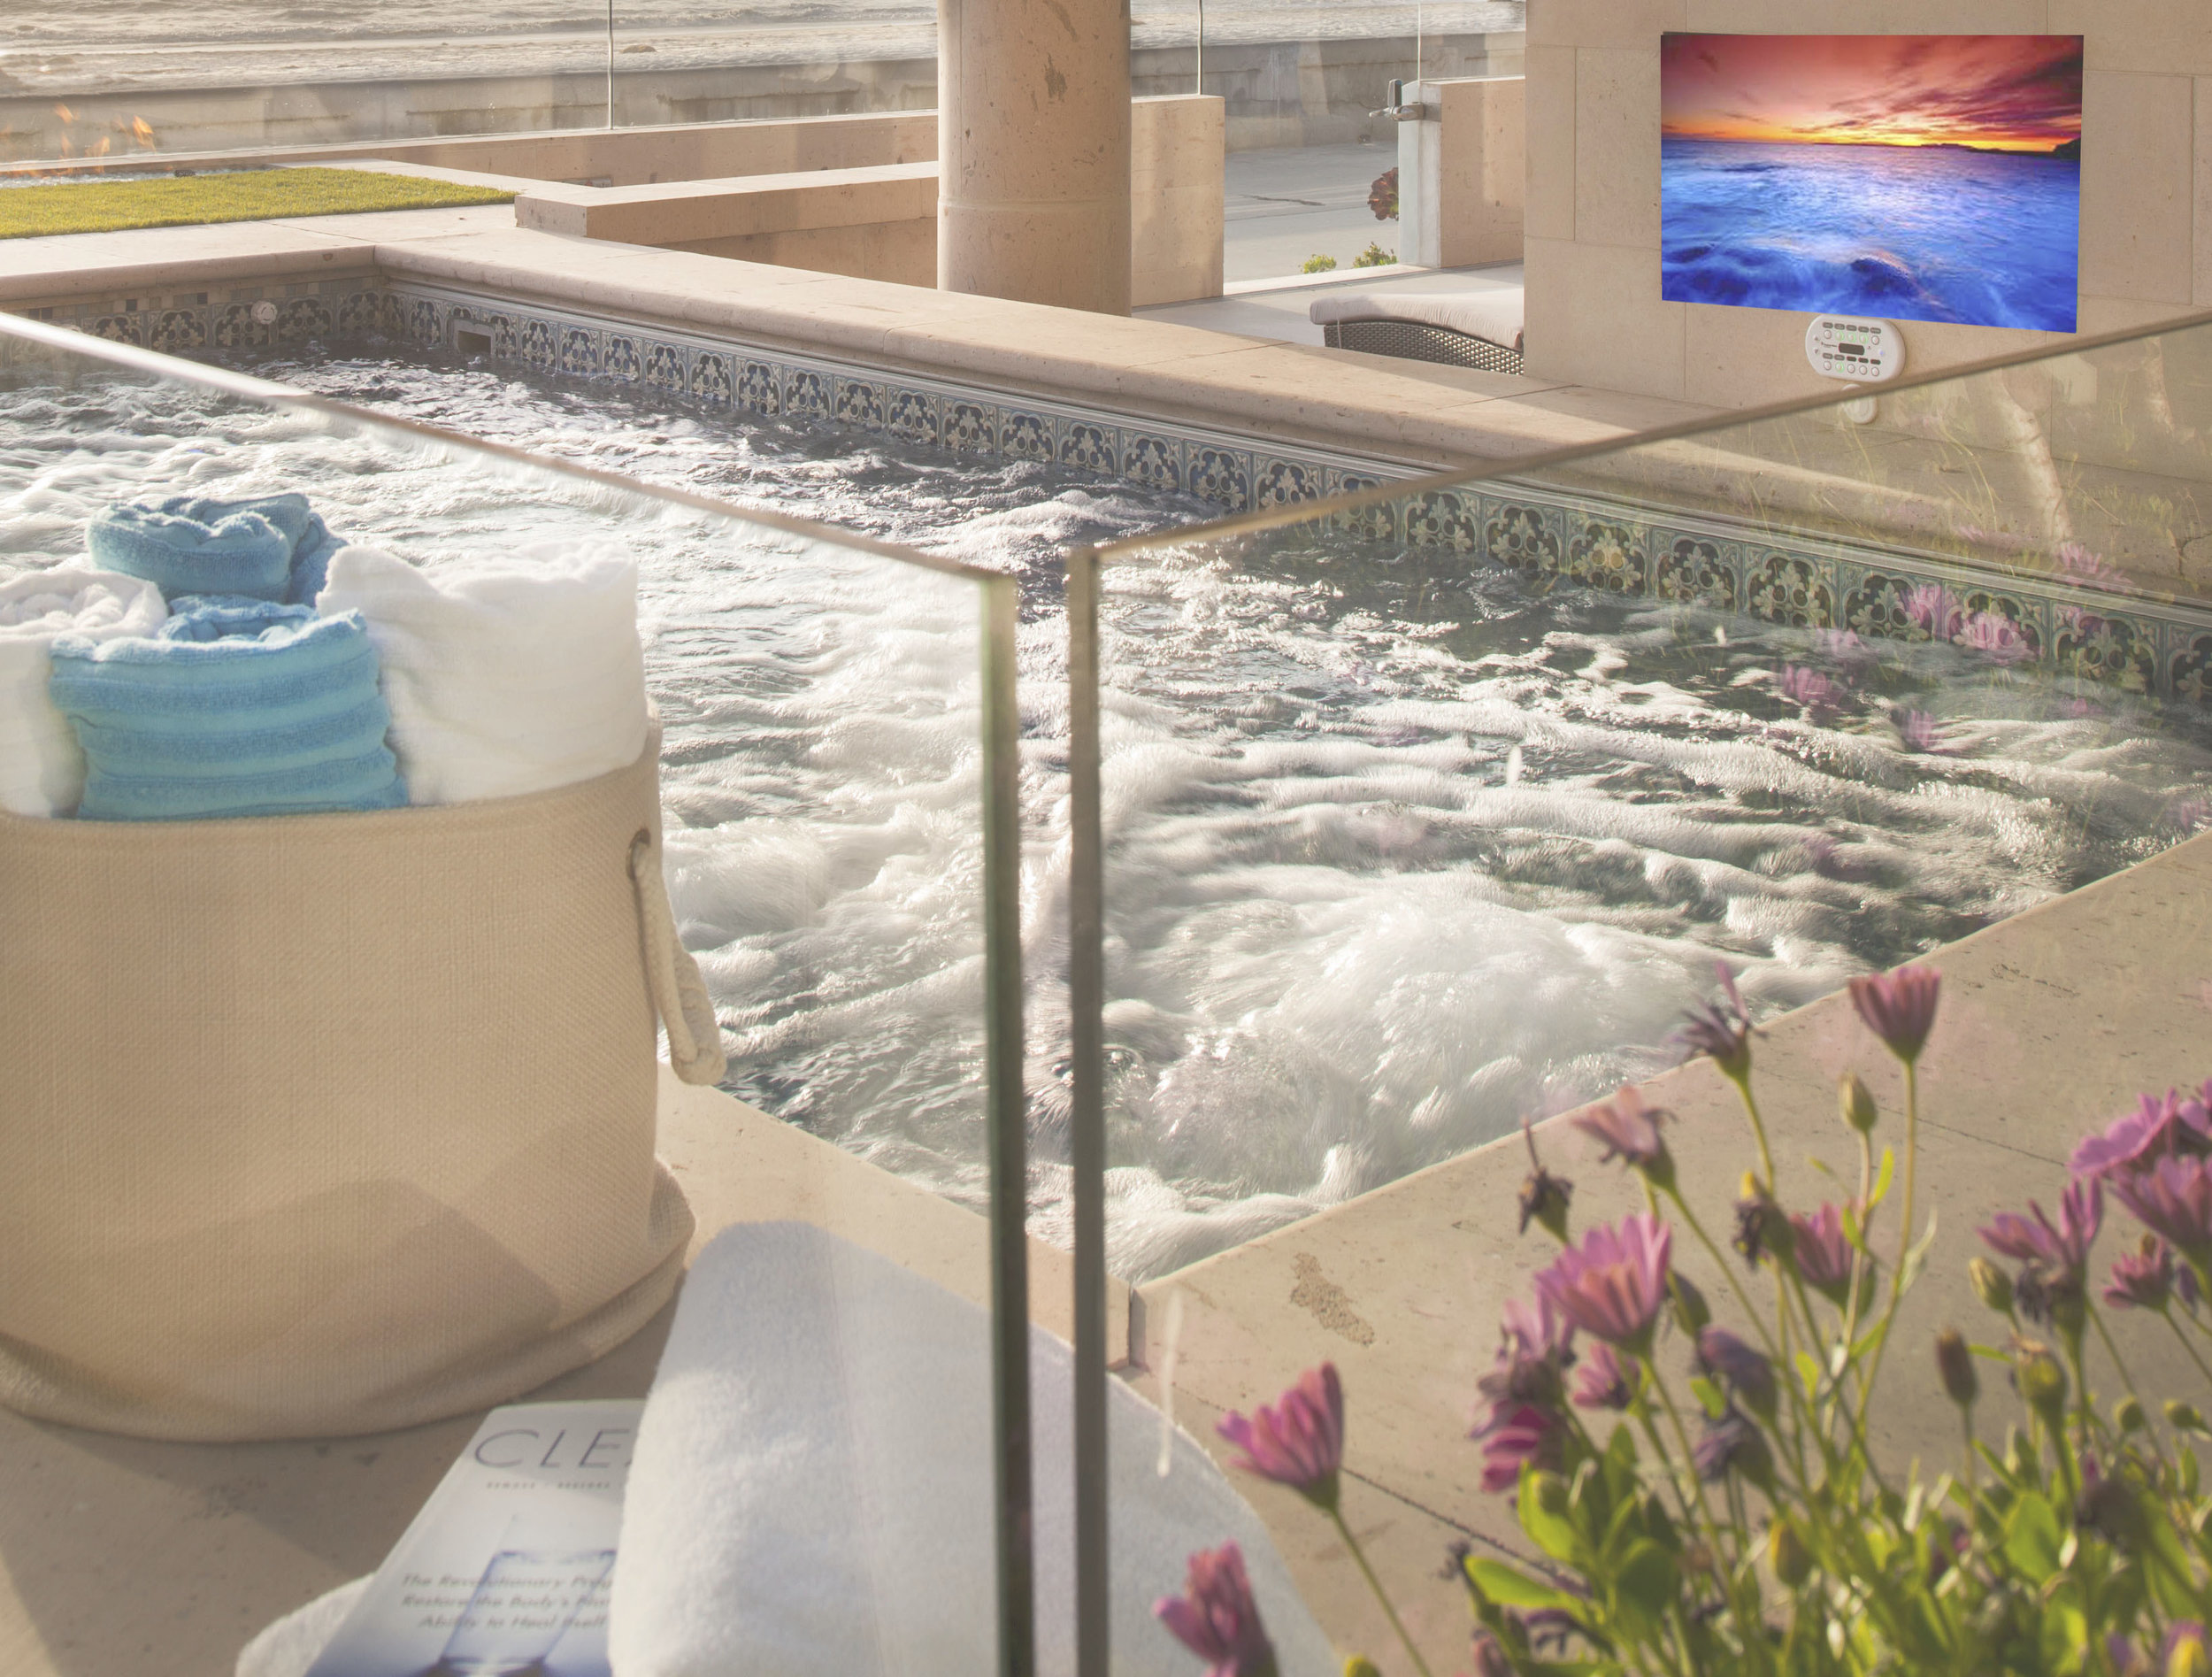 Creature Comforts - Take charge of your environment. Whether setting a thermostat or the temperature of your spa. Many residential sub-systems can play nice together, making it easier to manage your domain.